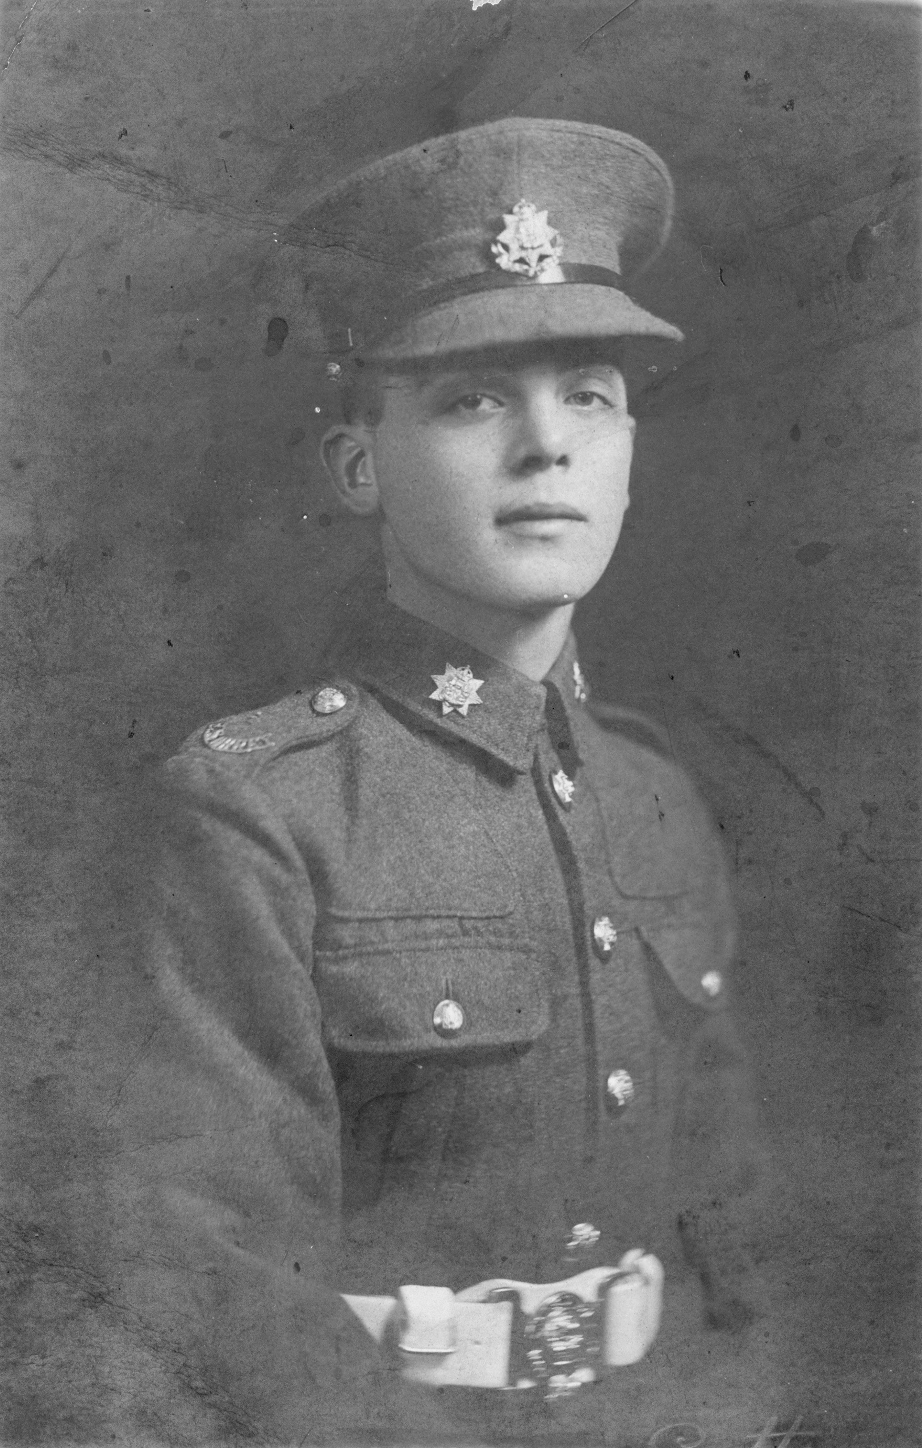 Robert in uniform as a young recruit in 1925